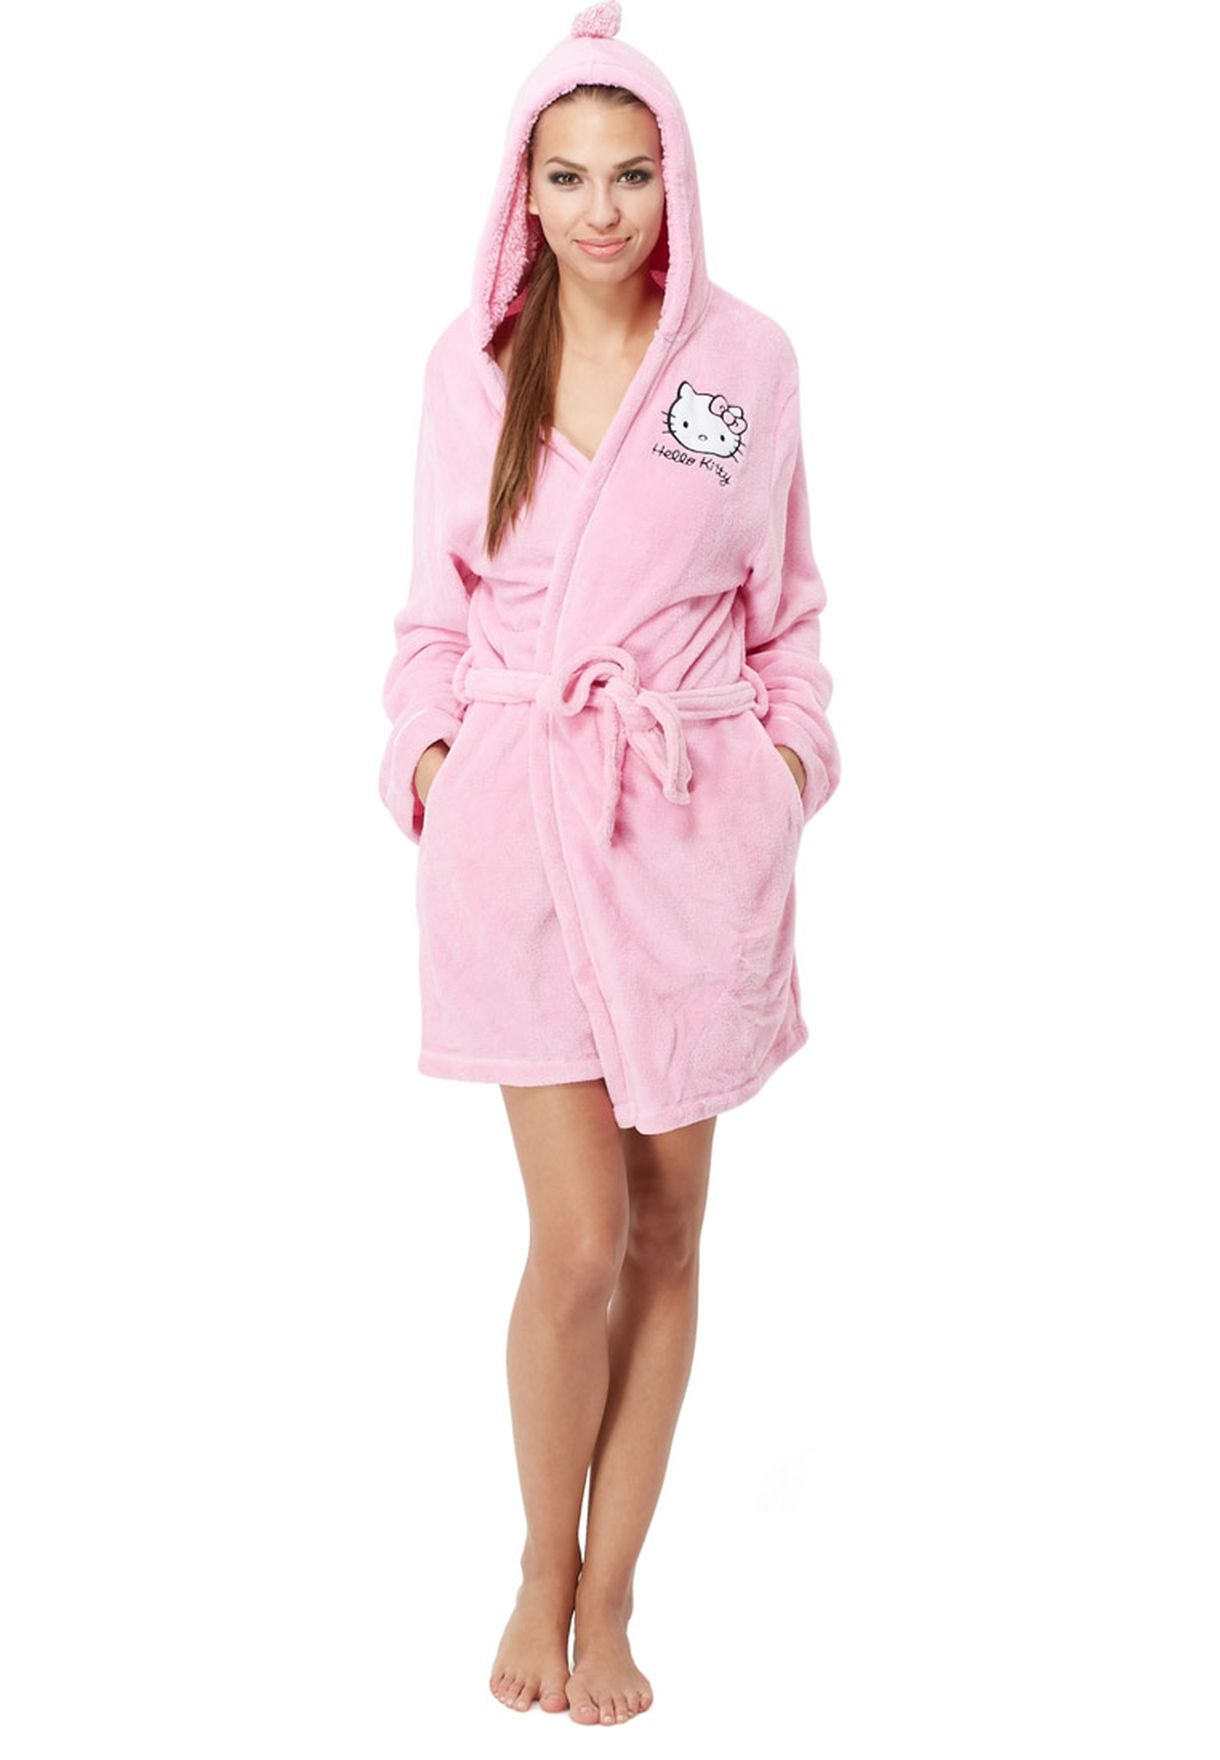 56d151c93 Shop Hello Kitty pink Hello Kitty Hooded Robe for Women in Saudi ...